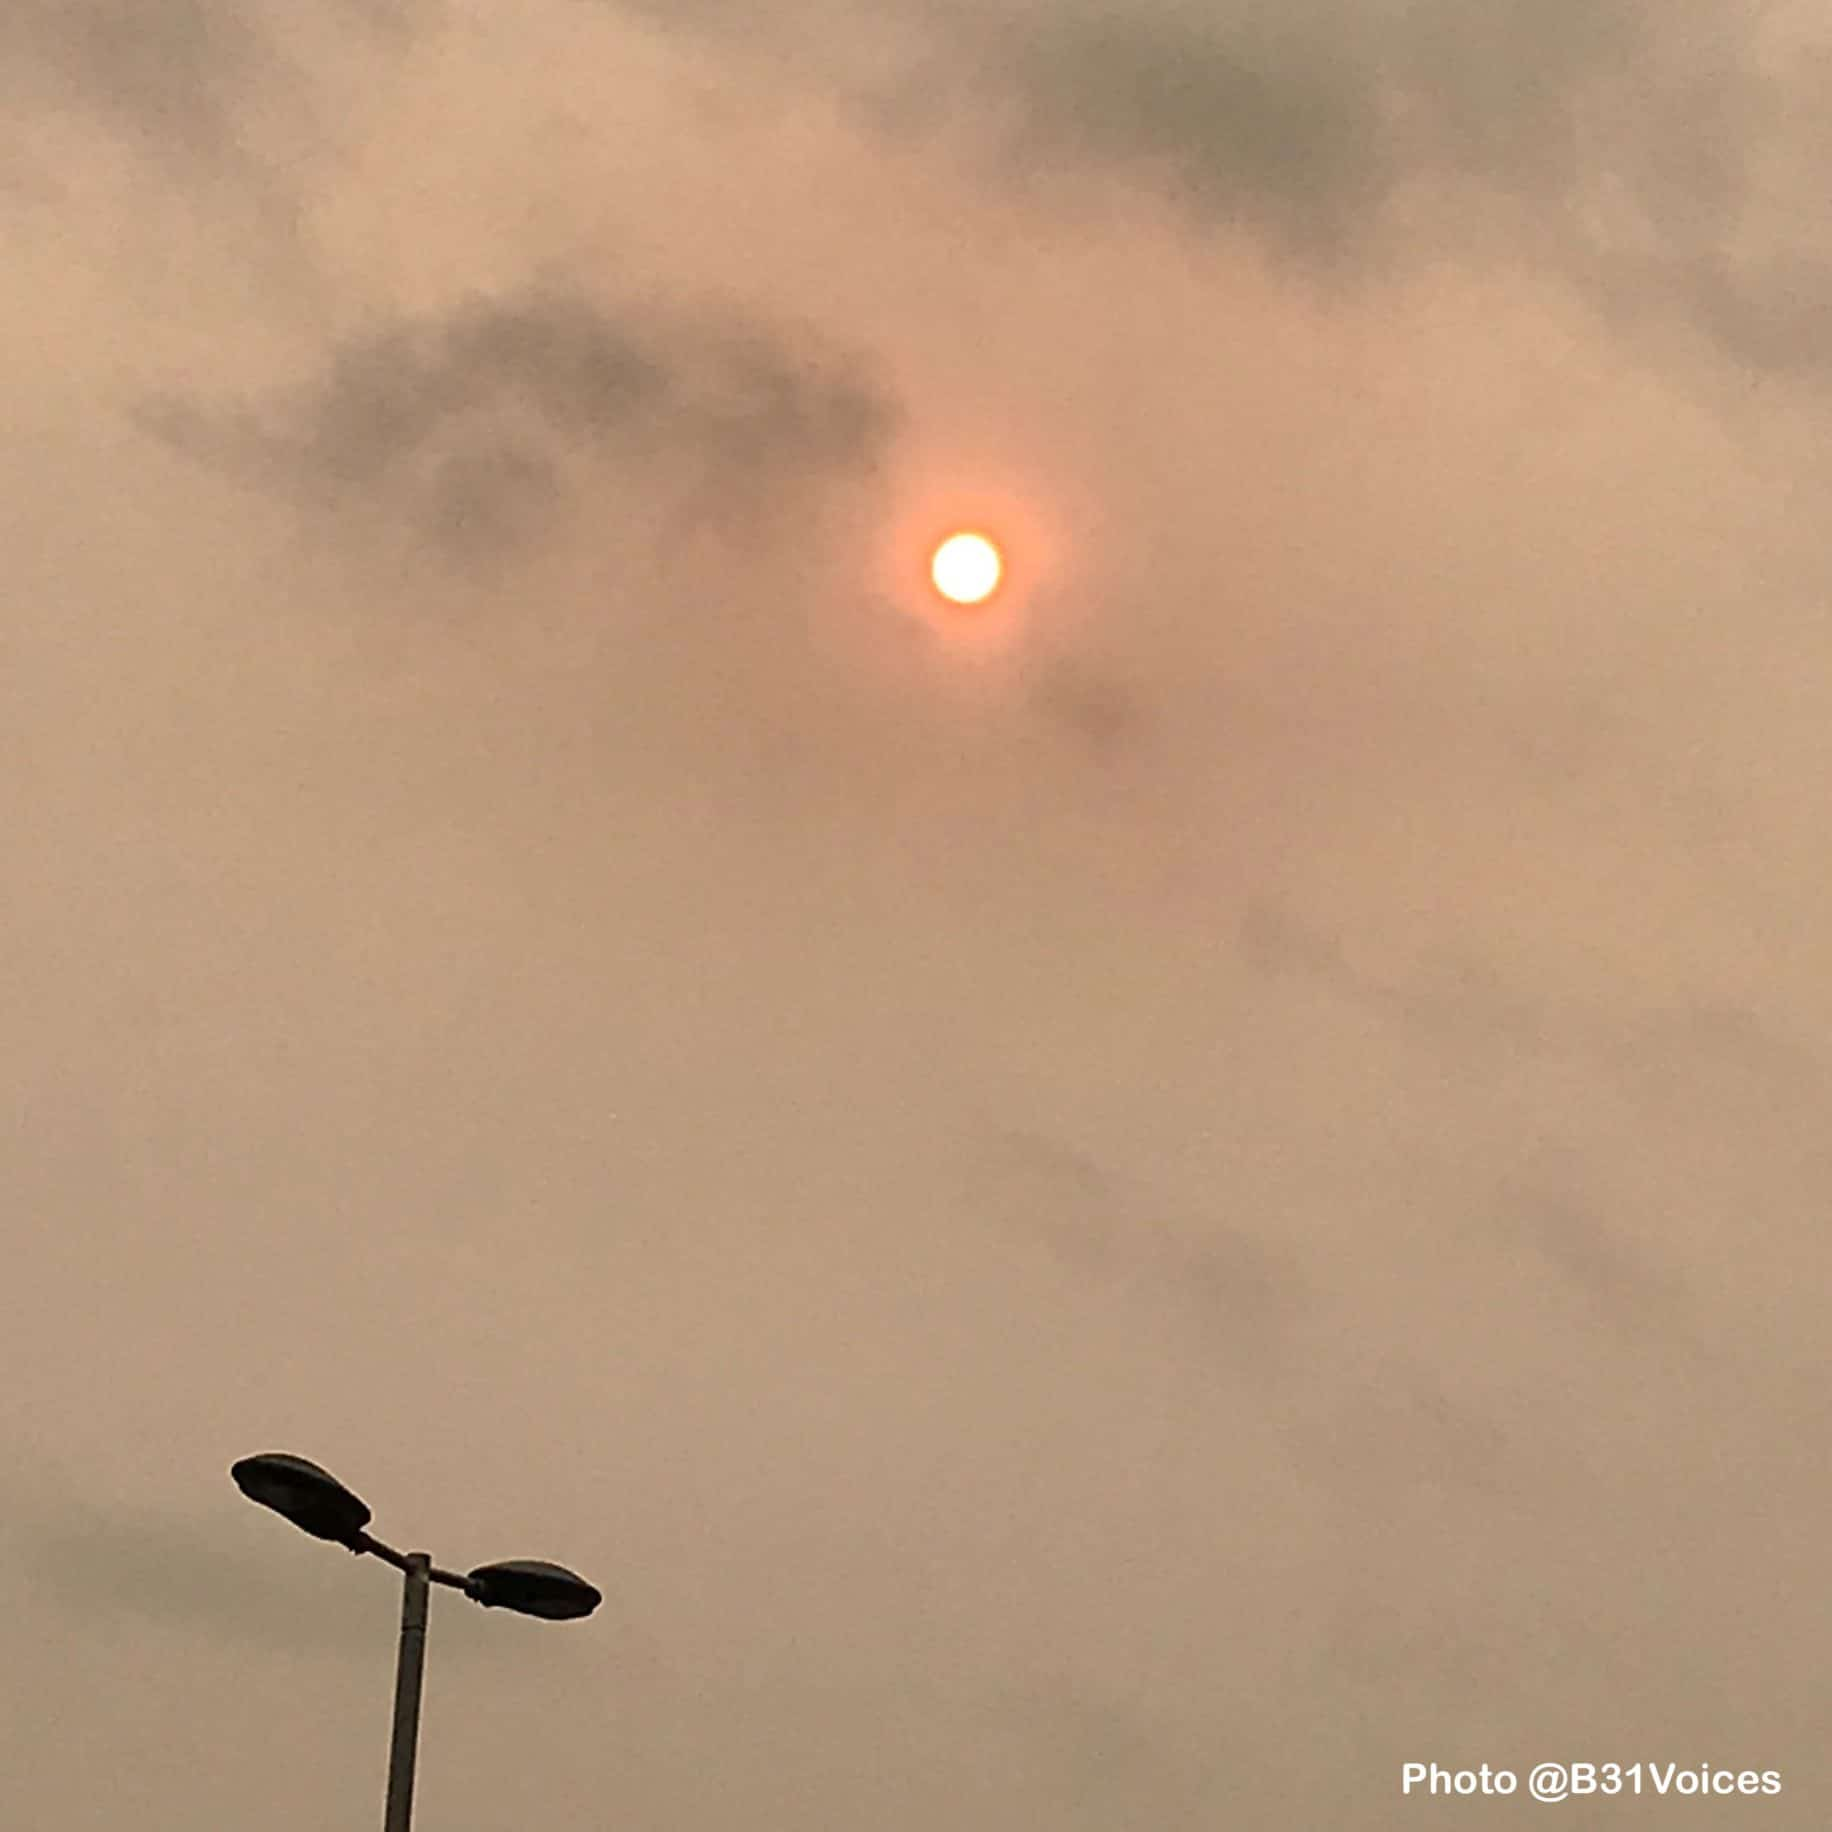 Storm Ophelia turns sun red over parts of England